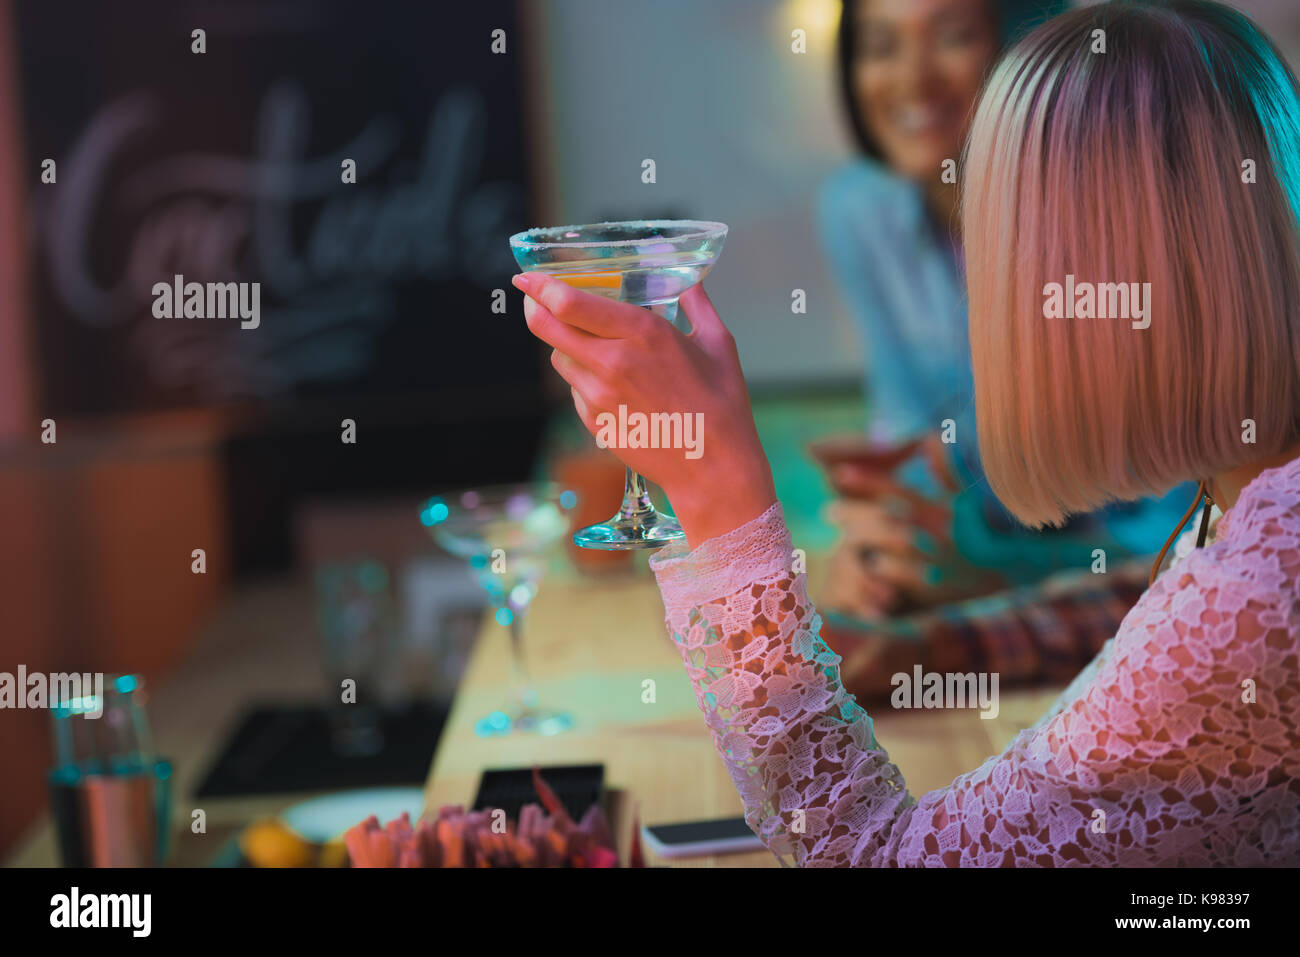 Woman holding cocktail Photo Stock